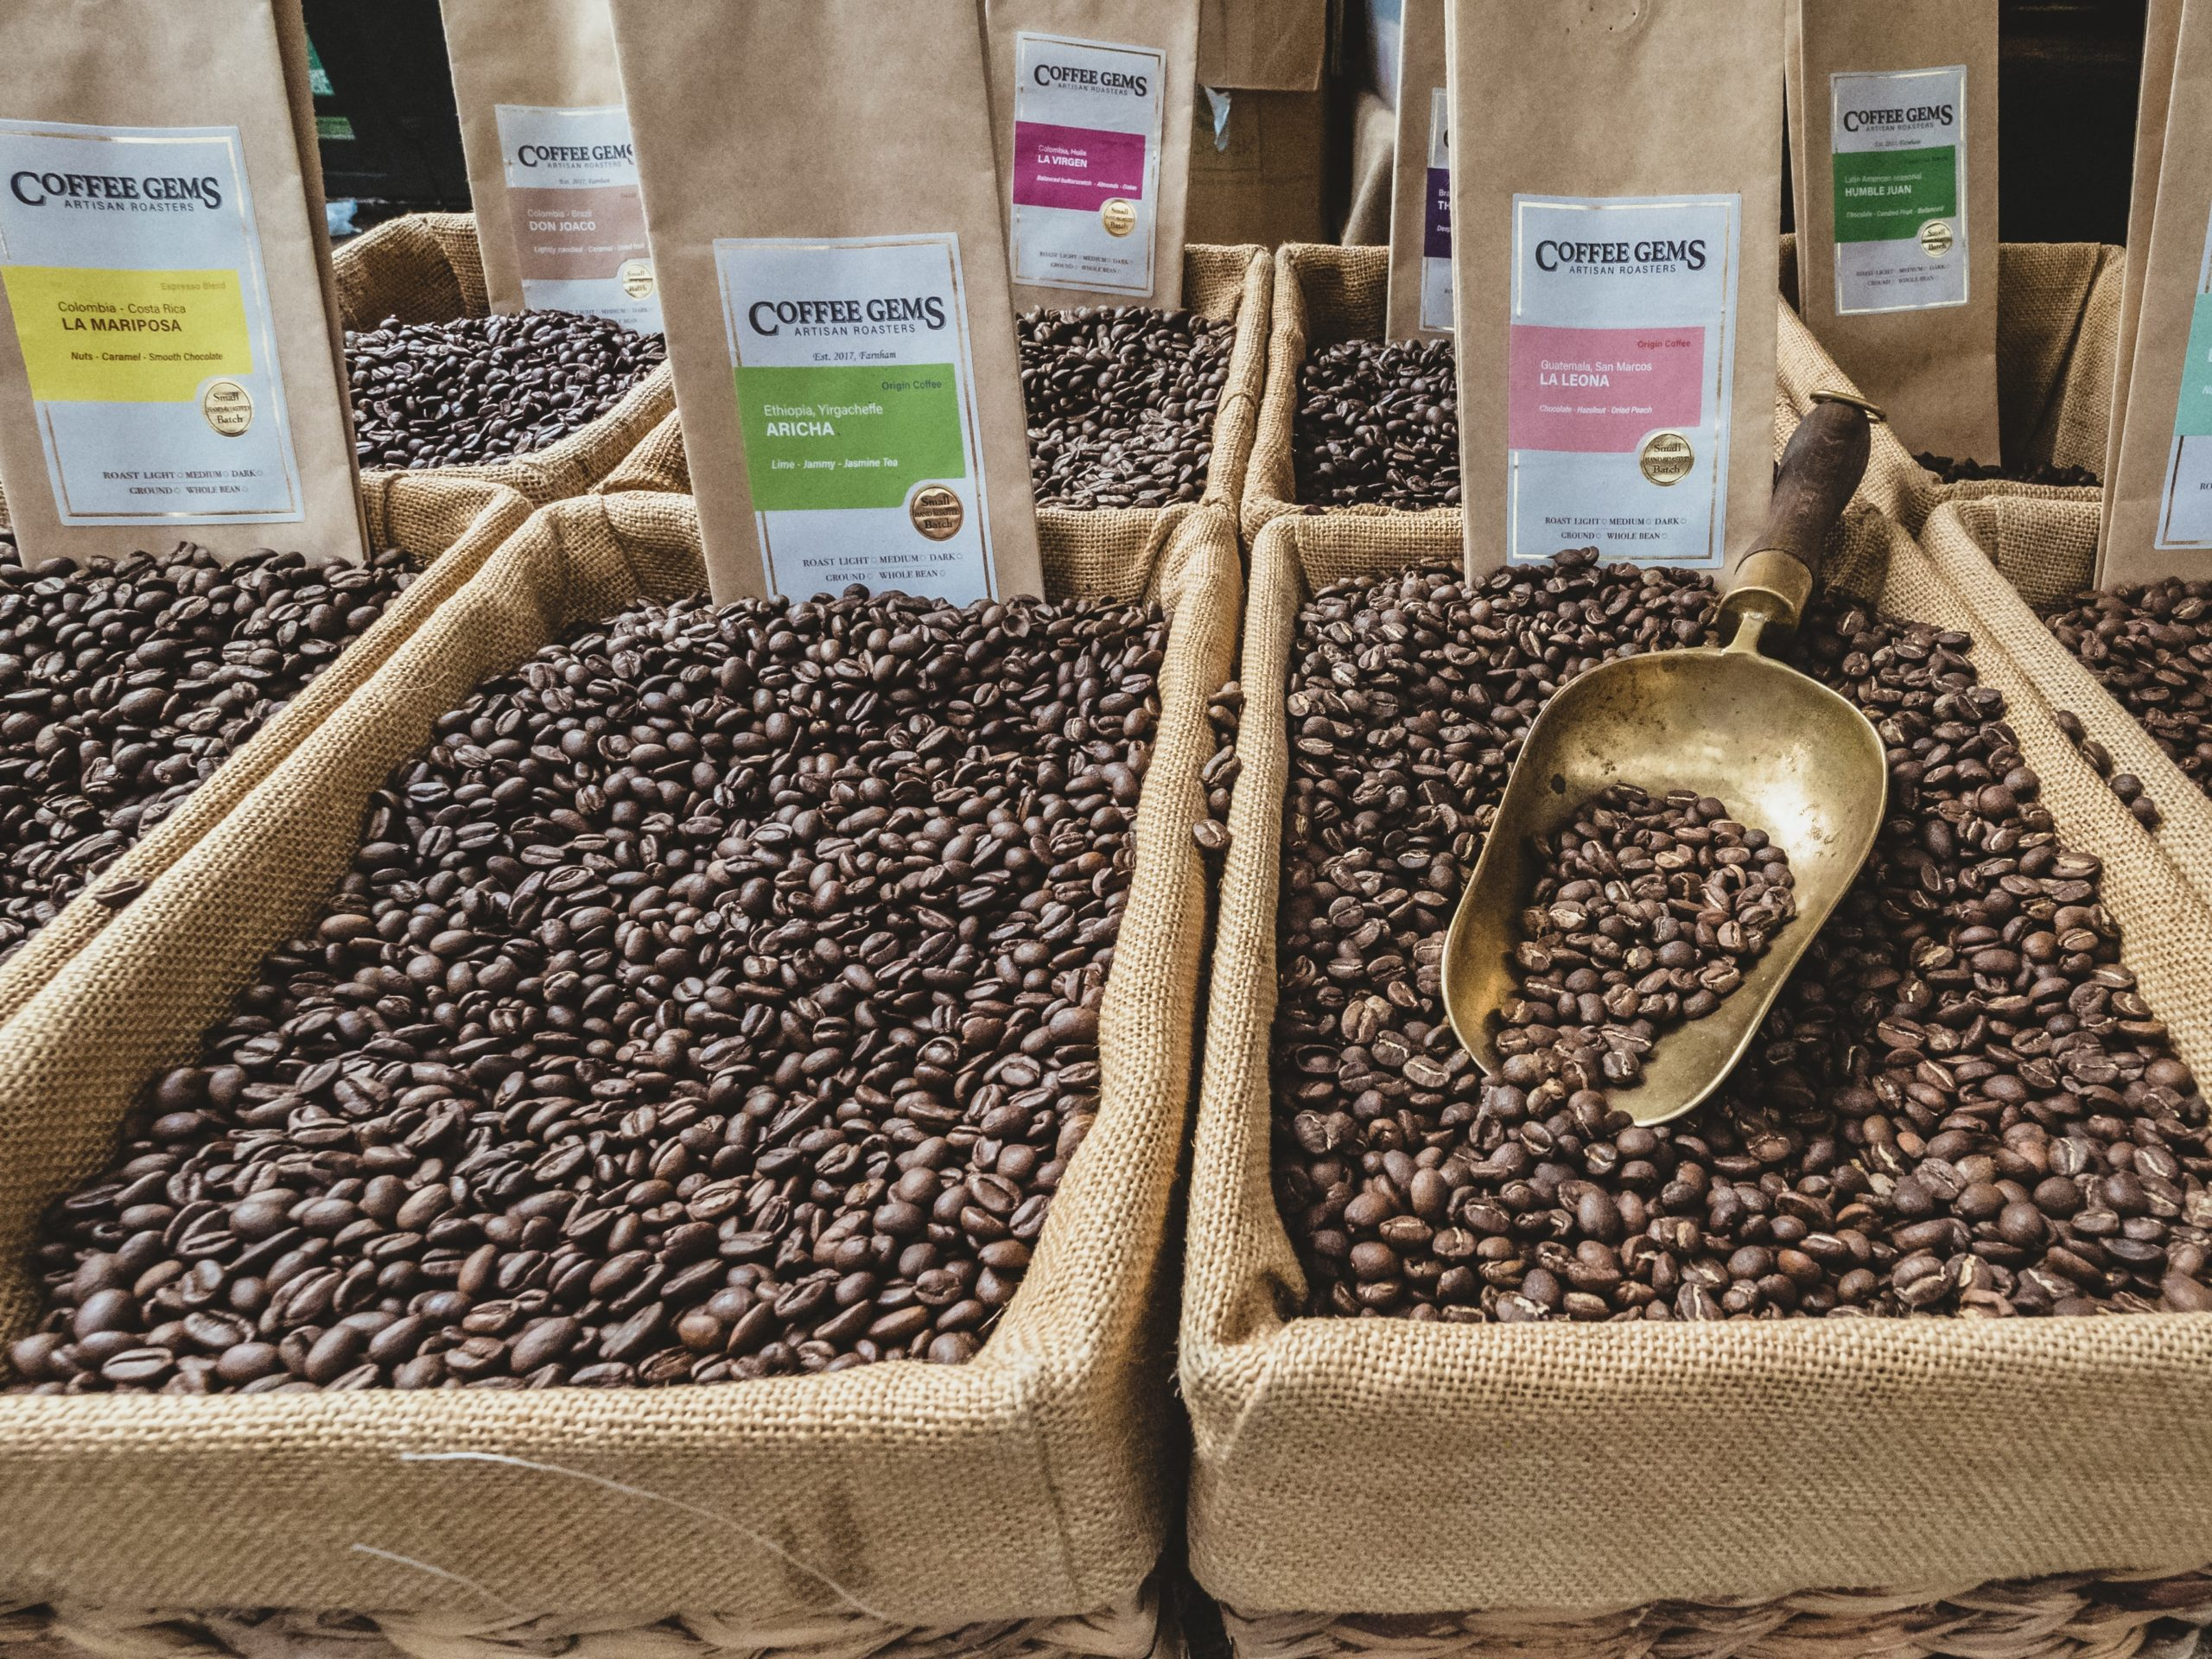 Boxes of coffee beans being retailed